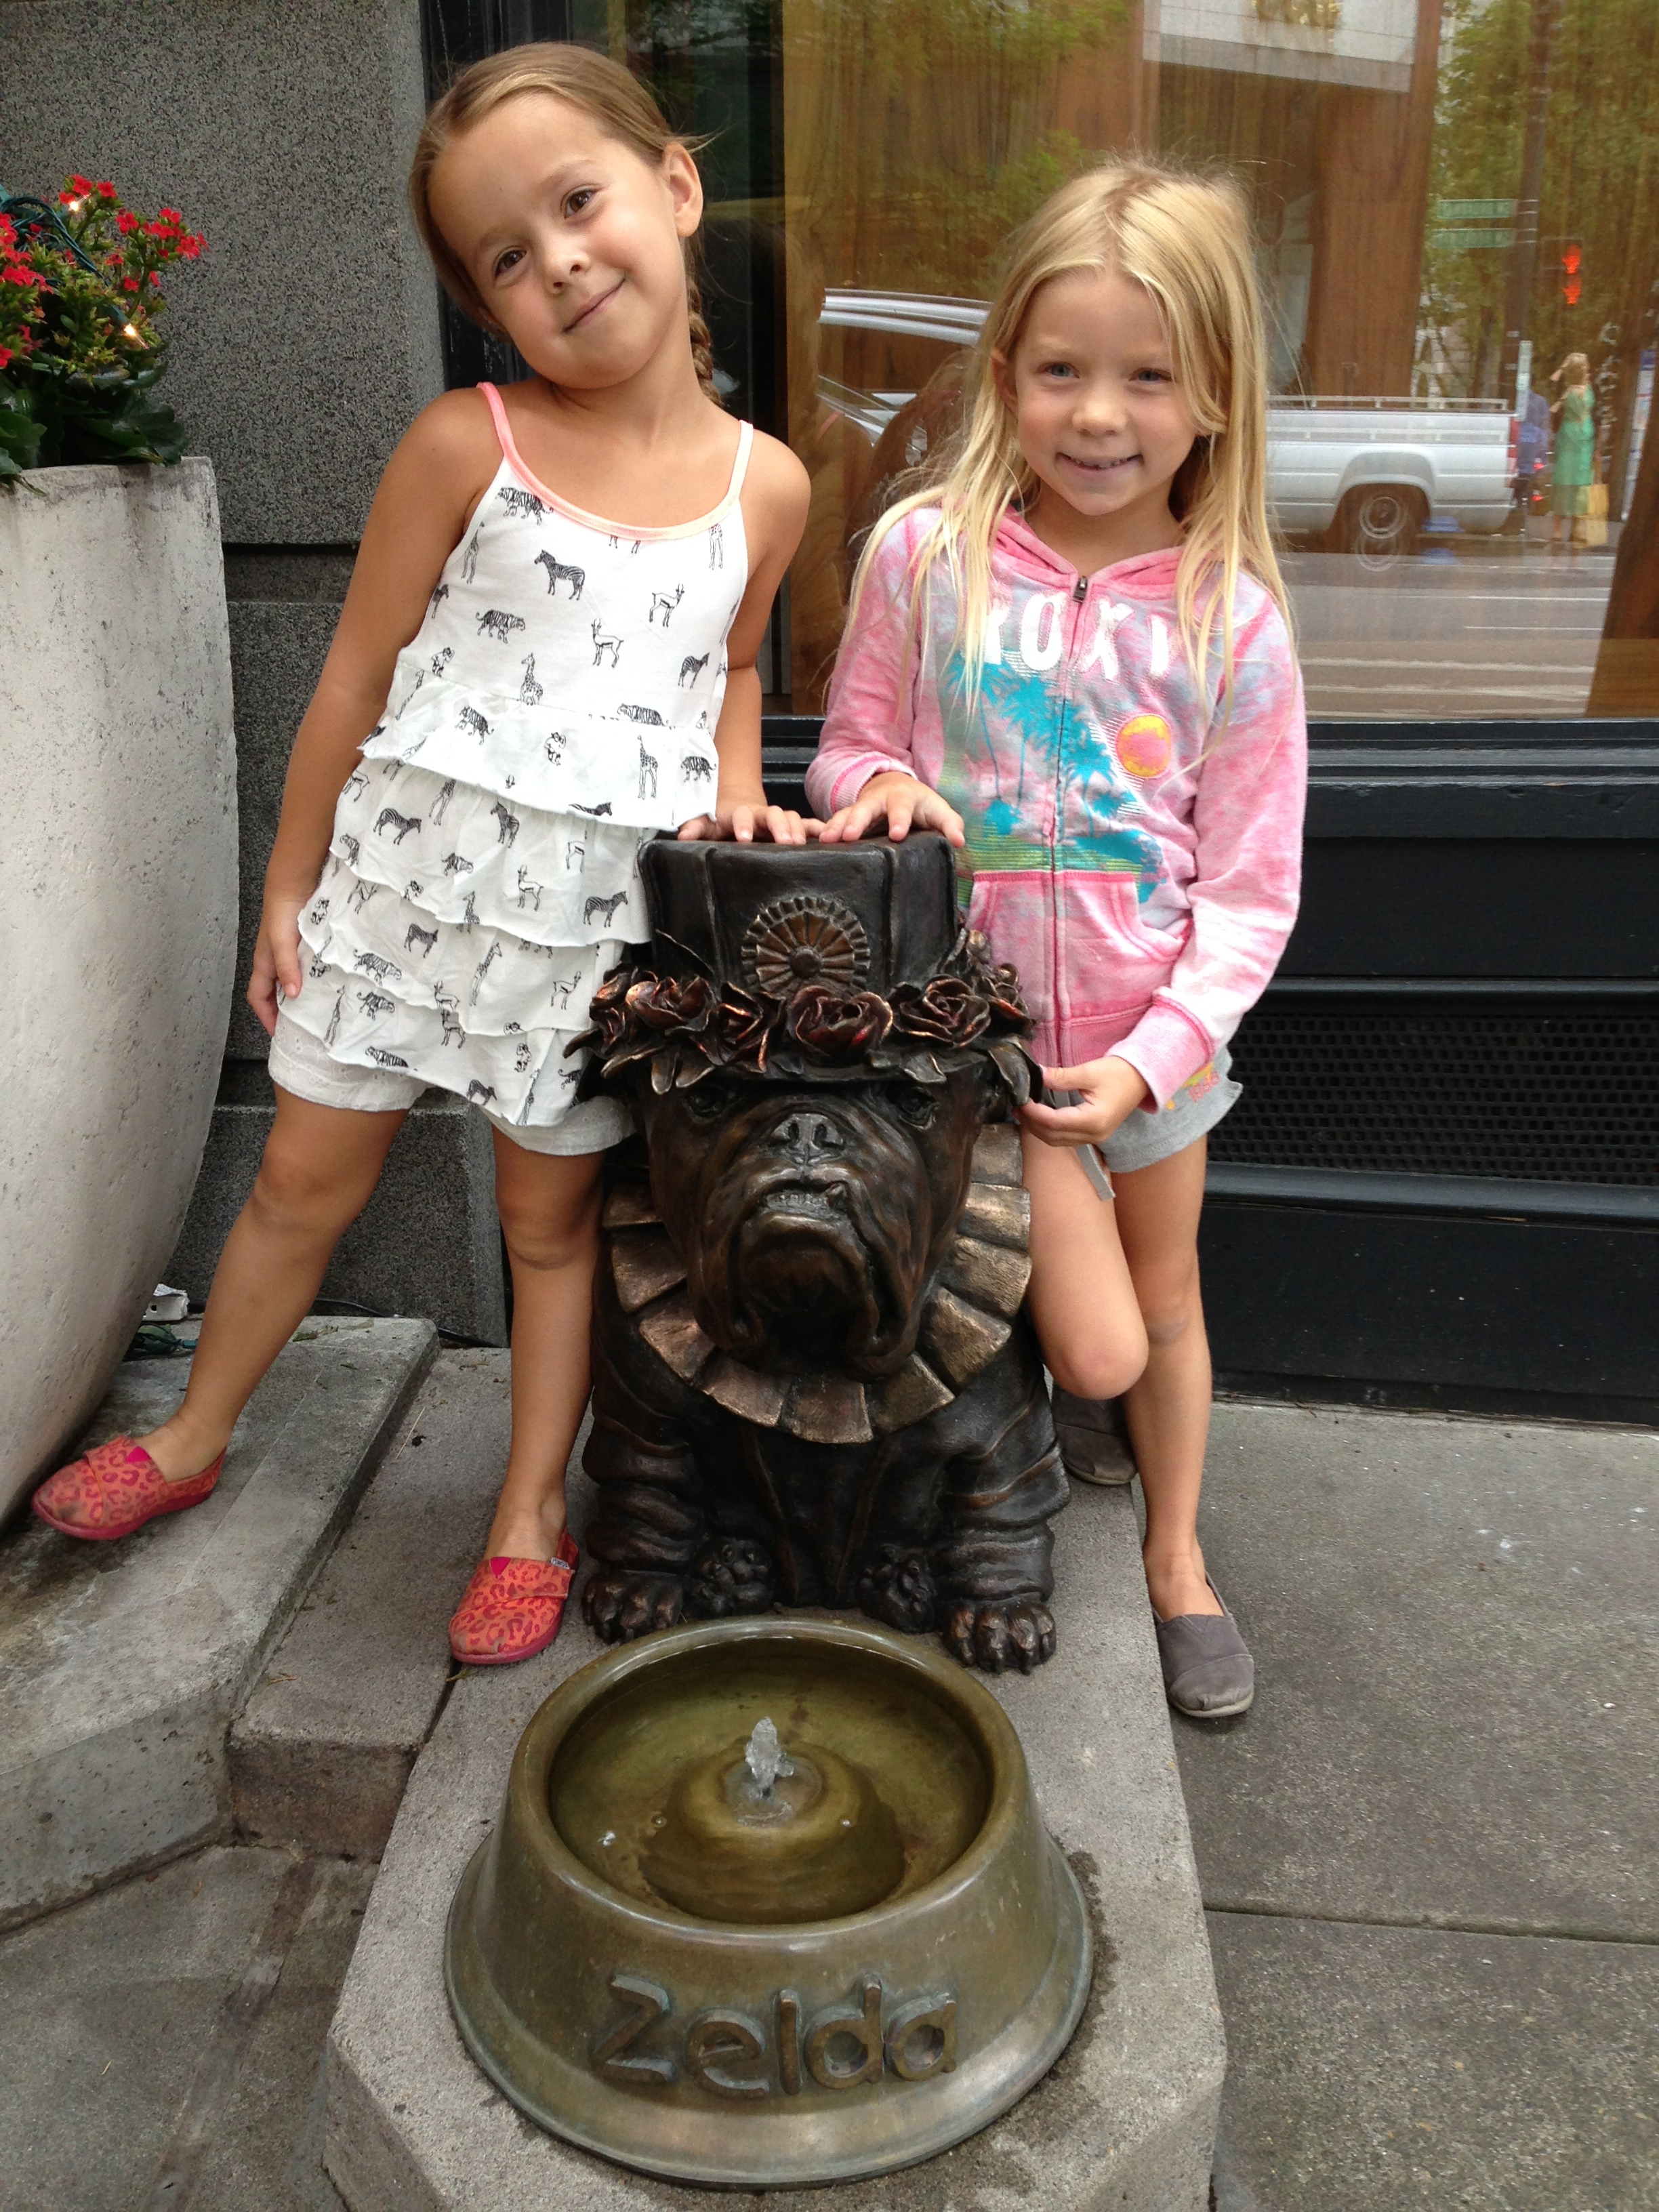 Portland, travel, family trip, traveling with kids, Pioneer Square, Oregon travel, Zelda the bulldog